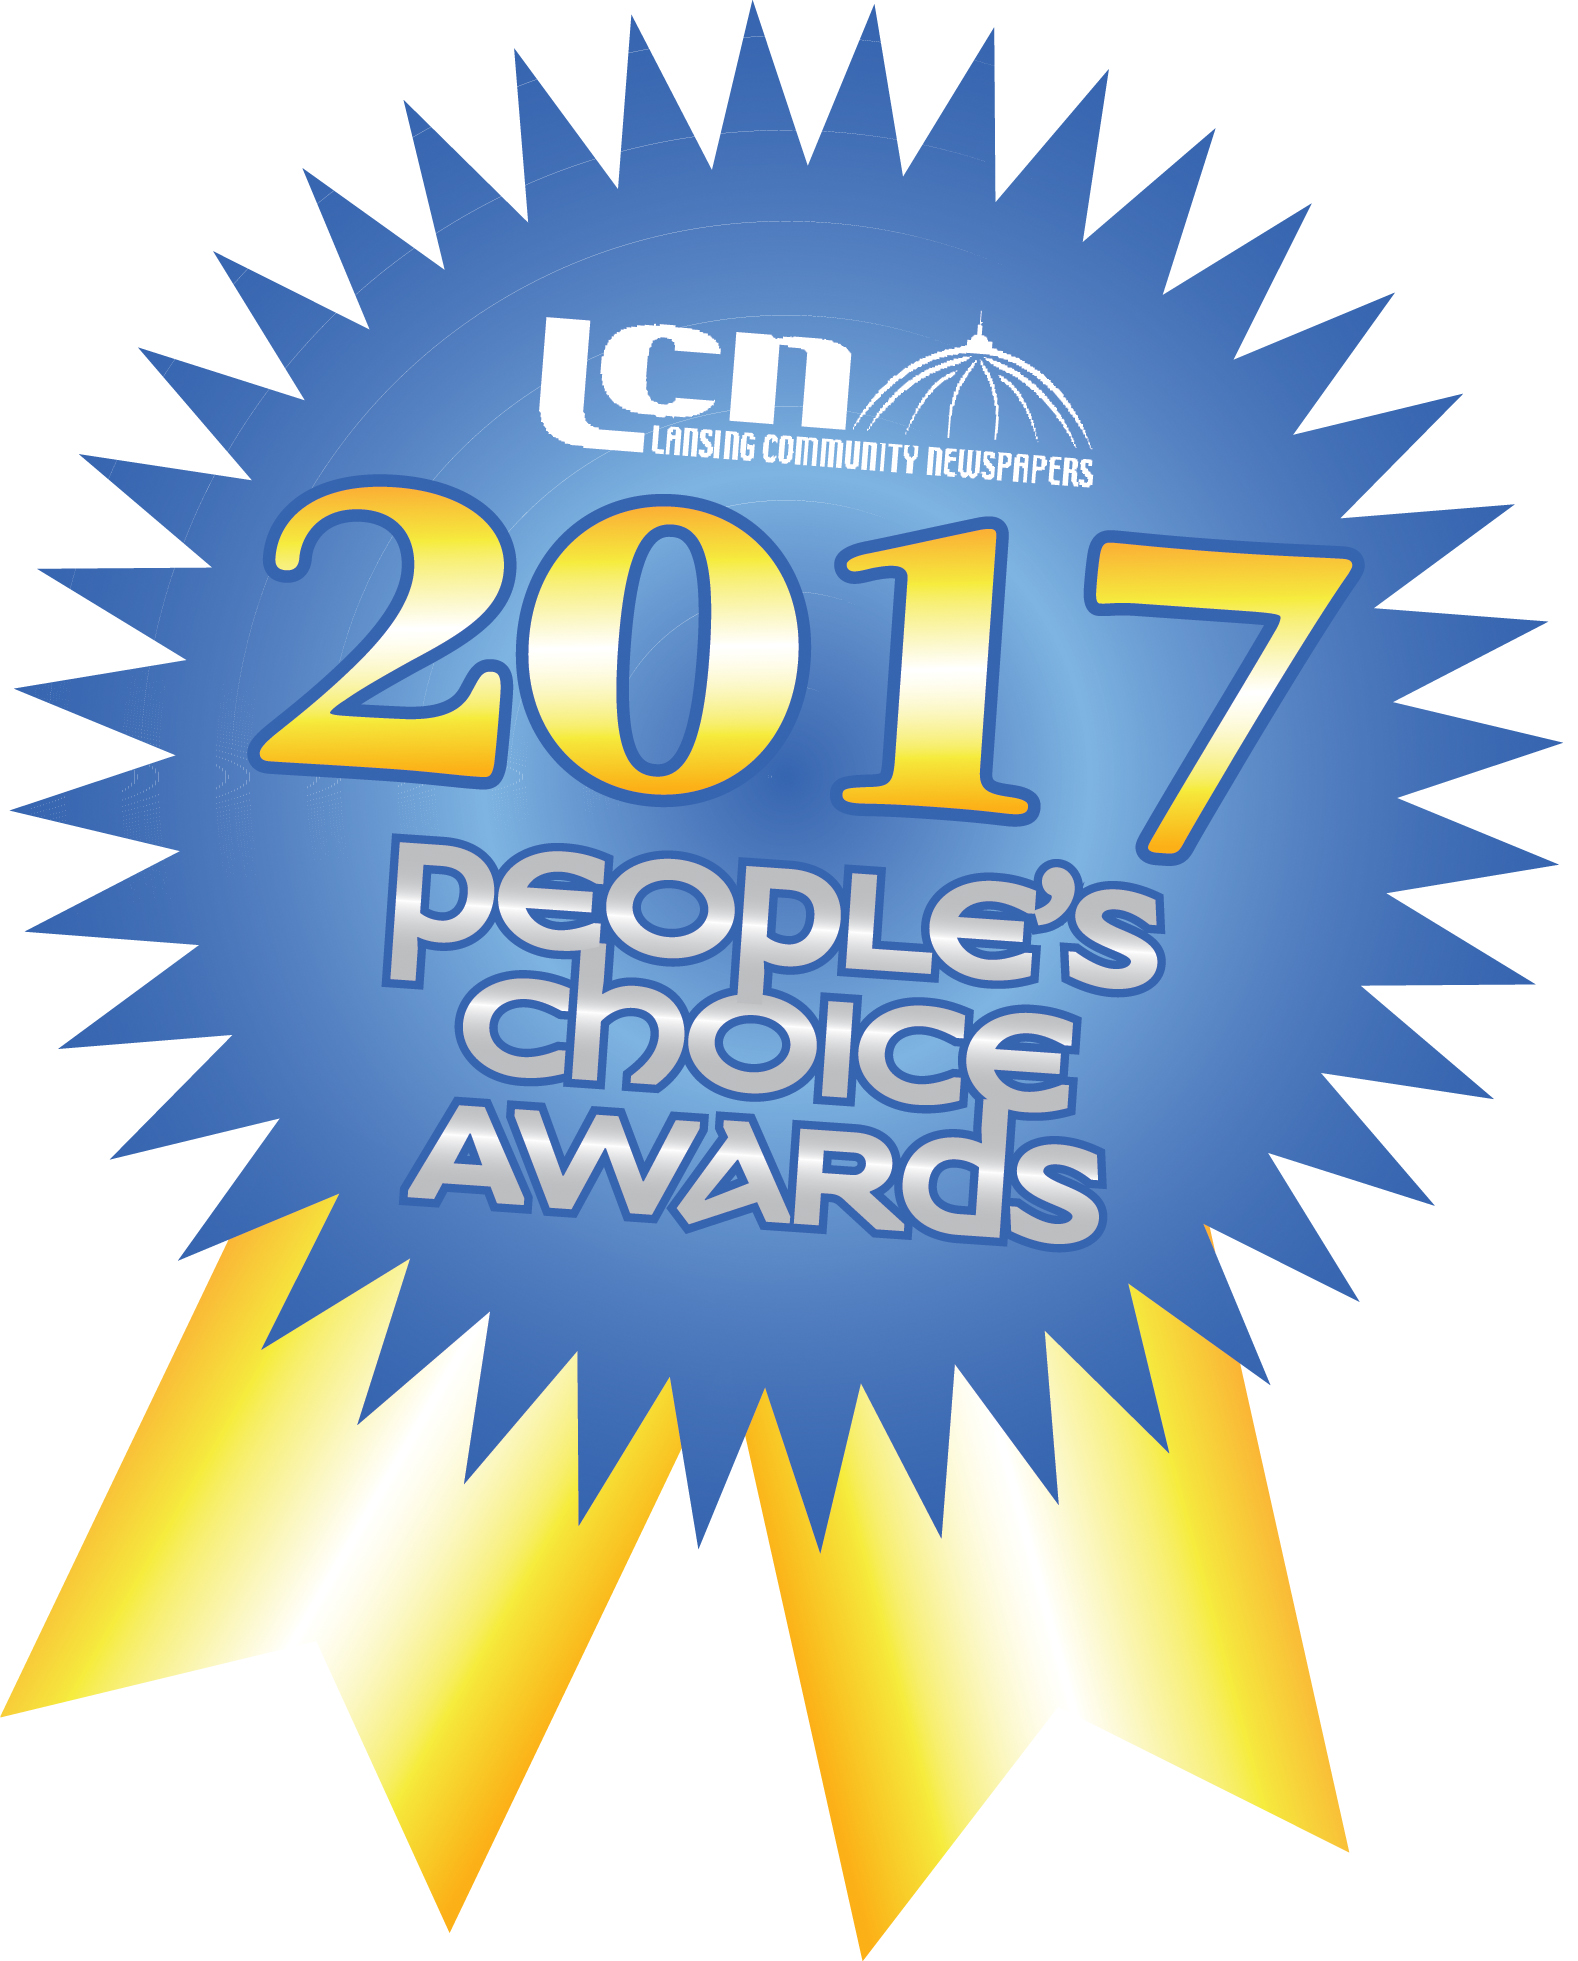 Why We Won the LCN 2017 People's Choice Awards